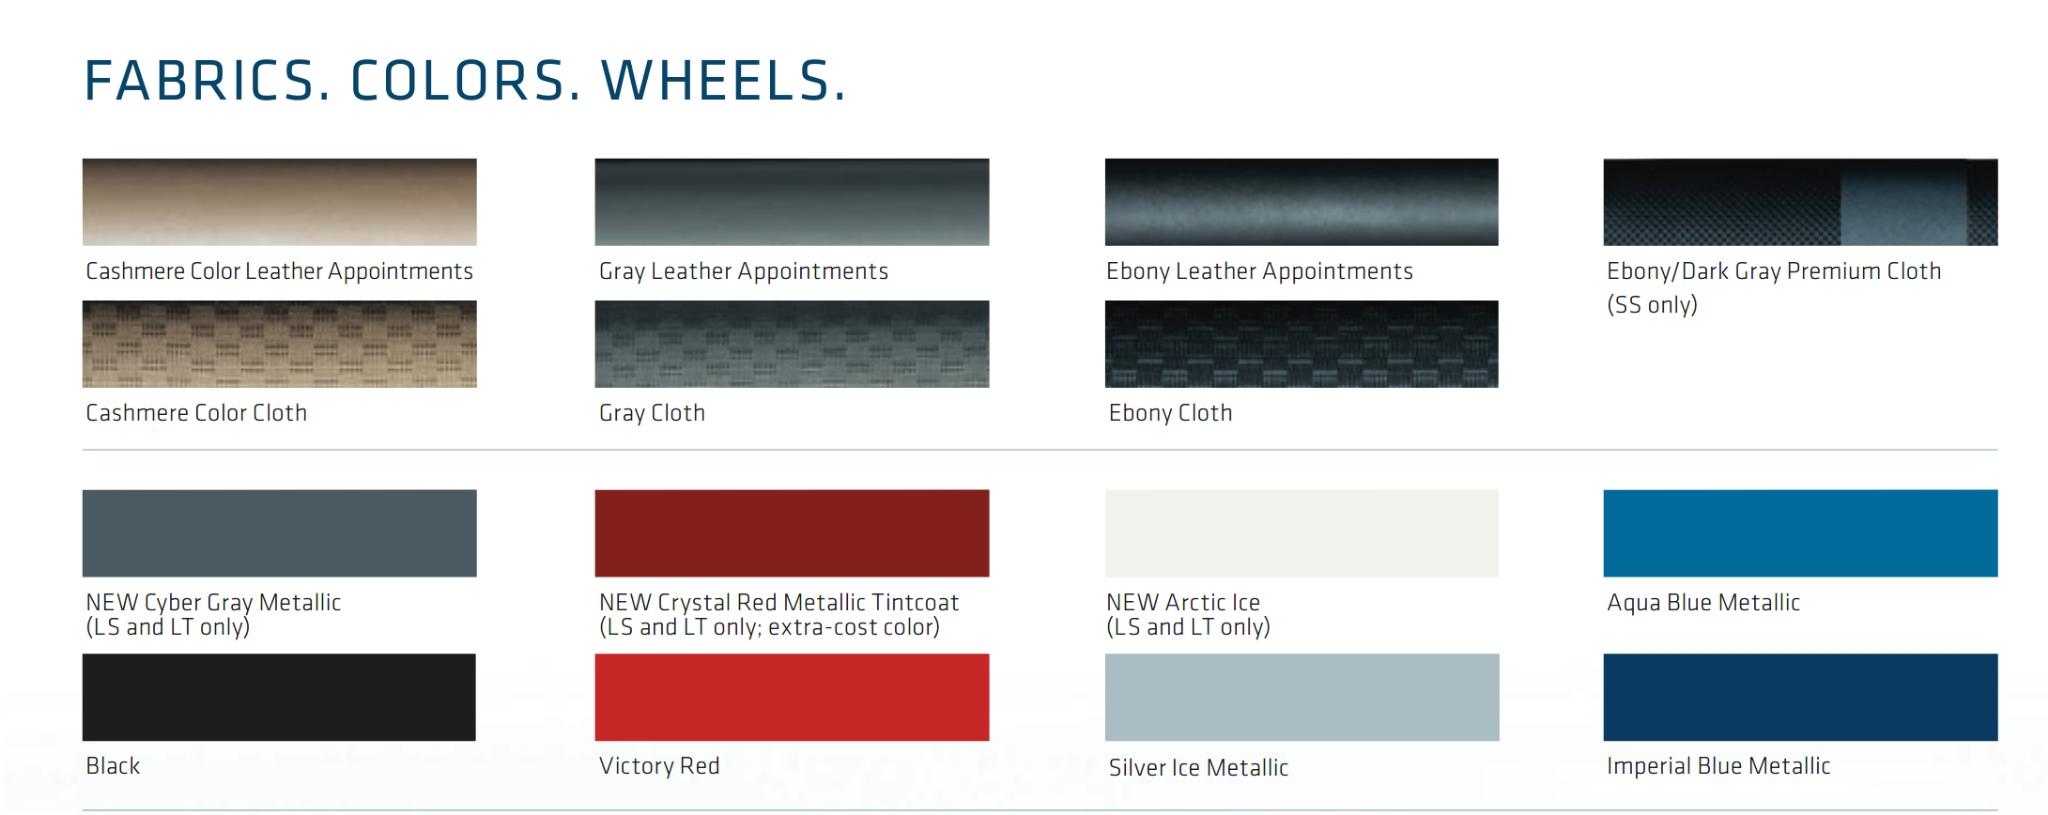 Interior and Exterior Paint Codes used on the Cheverolet HHR Vehicle